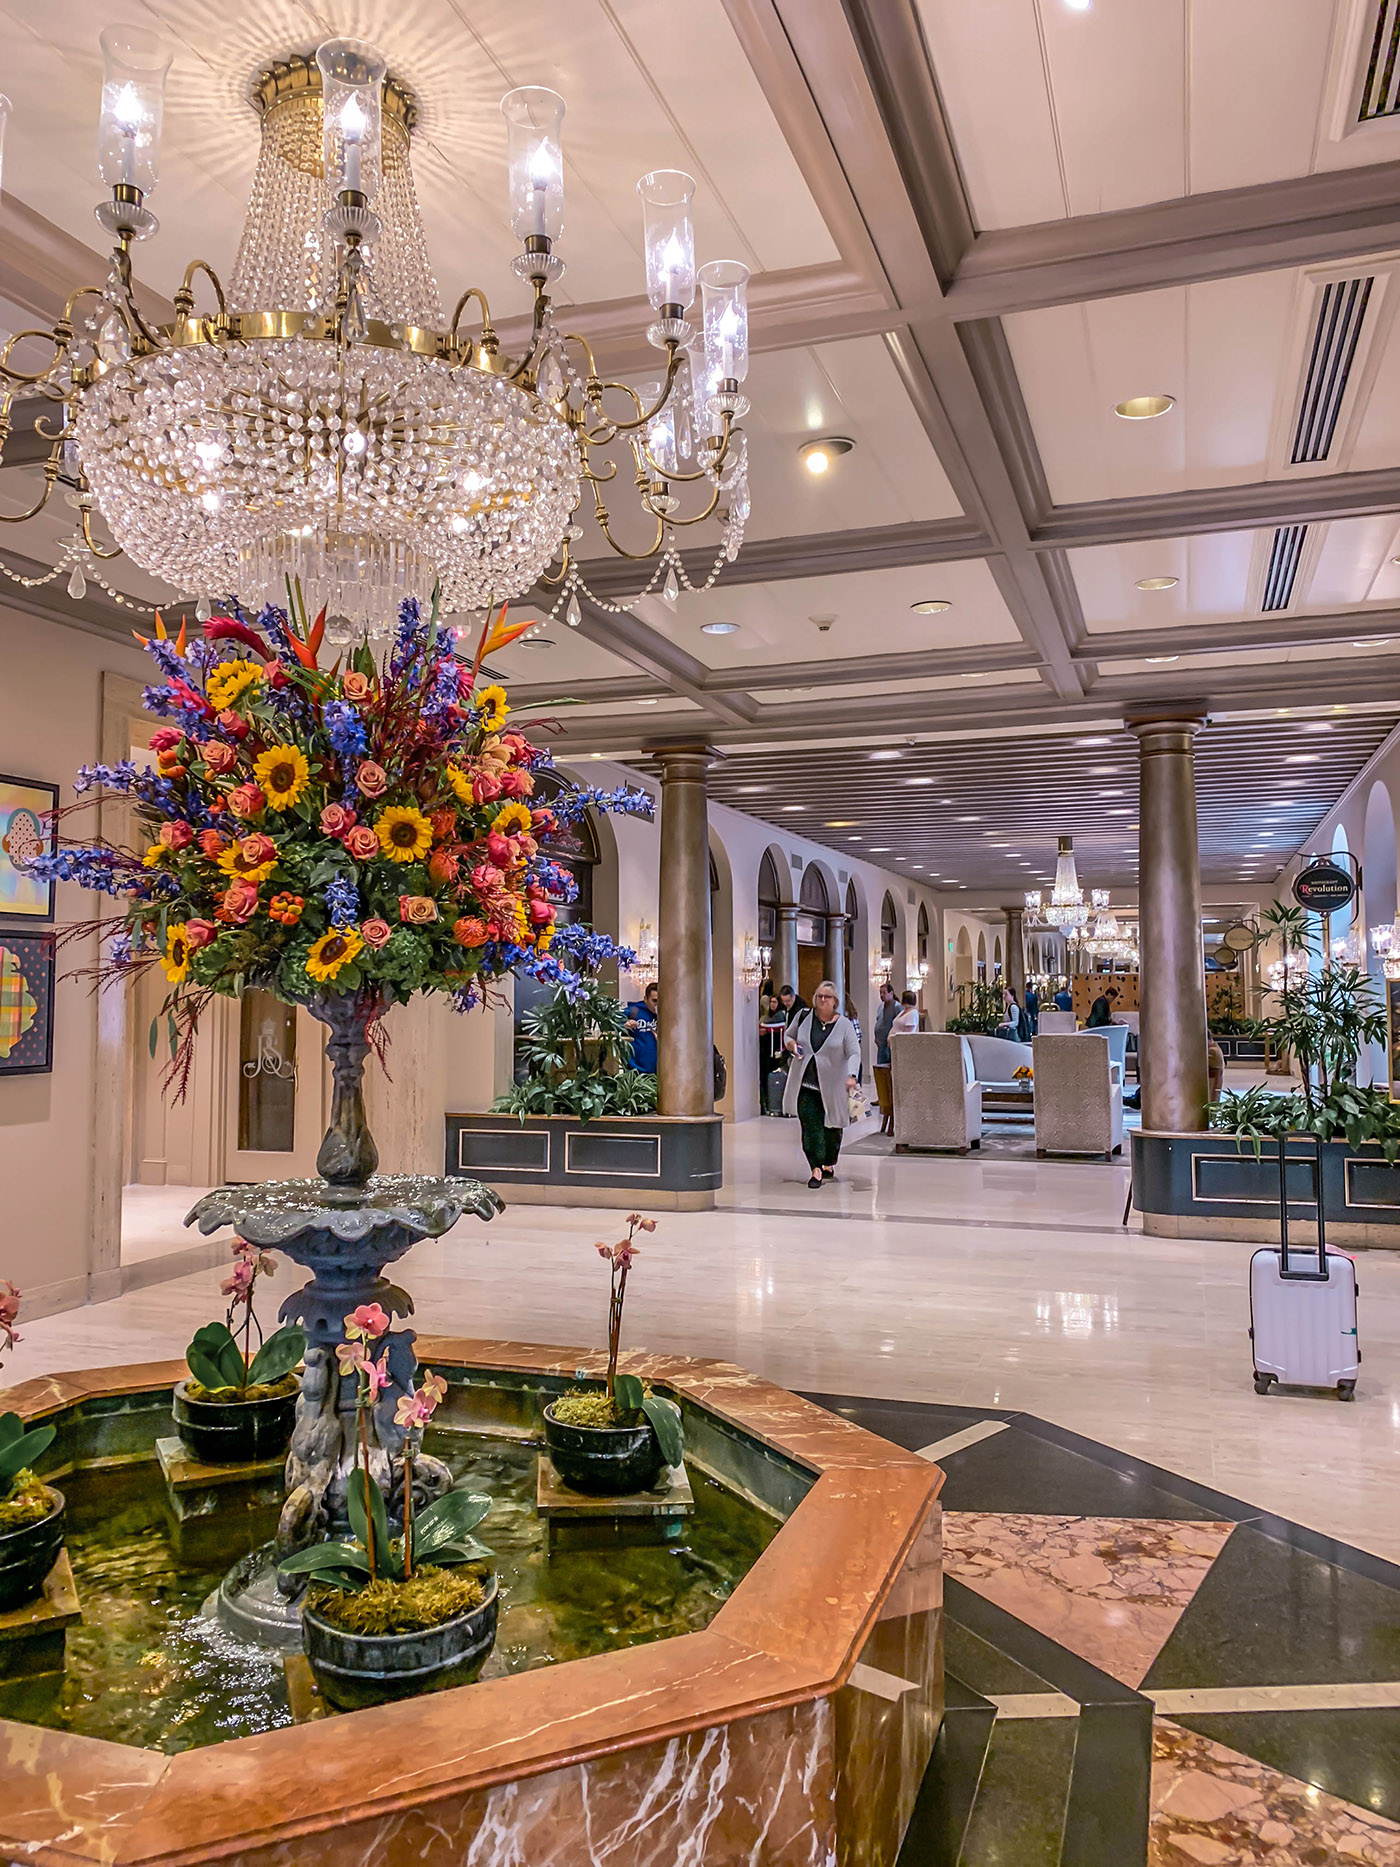 Royal Sonesta Grand Lobby Reception area. New Orleans visit review